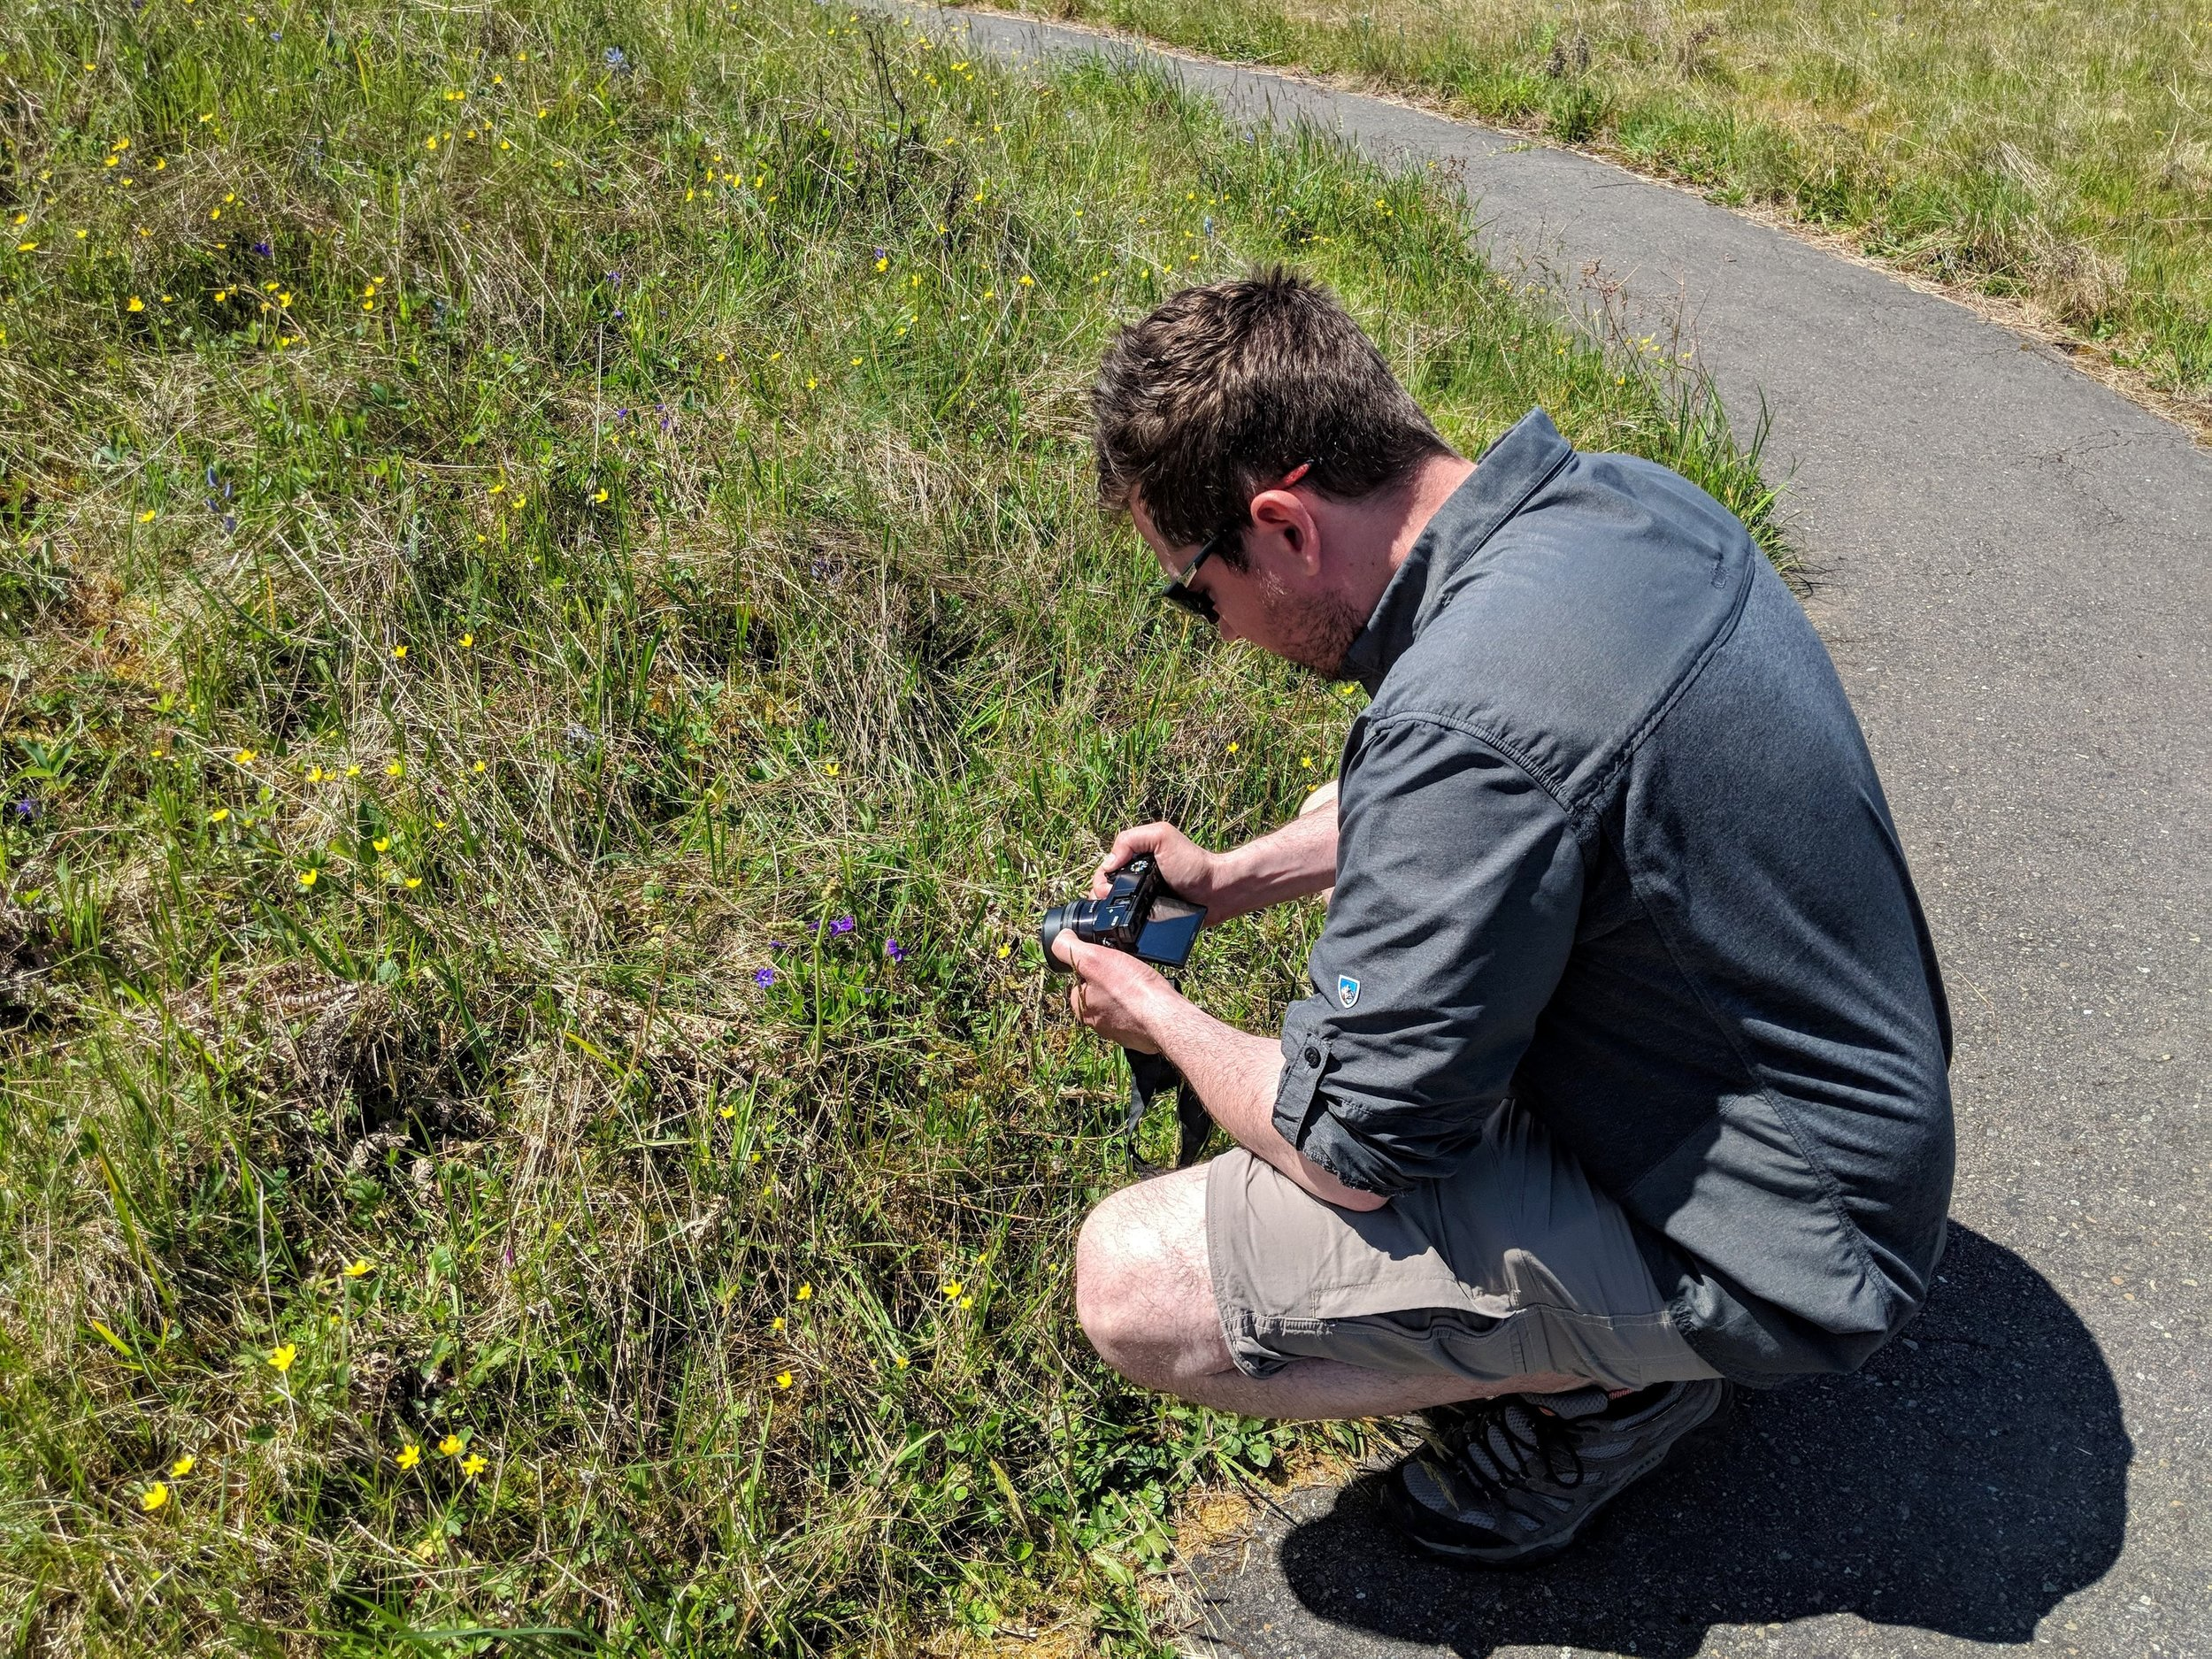 Taking photos of the many flowers at Mima Mounds